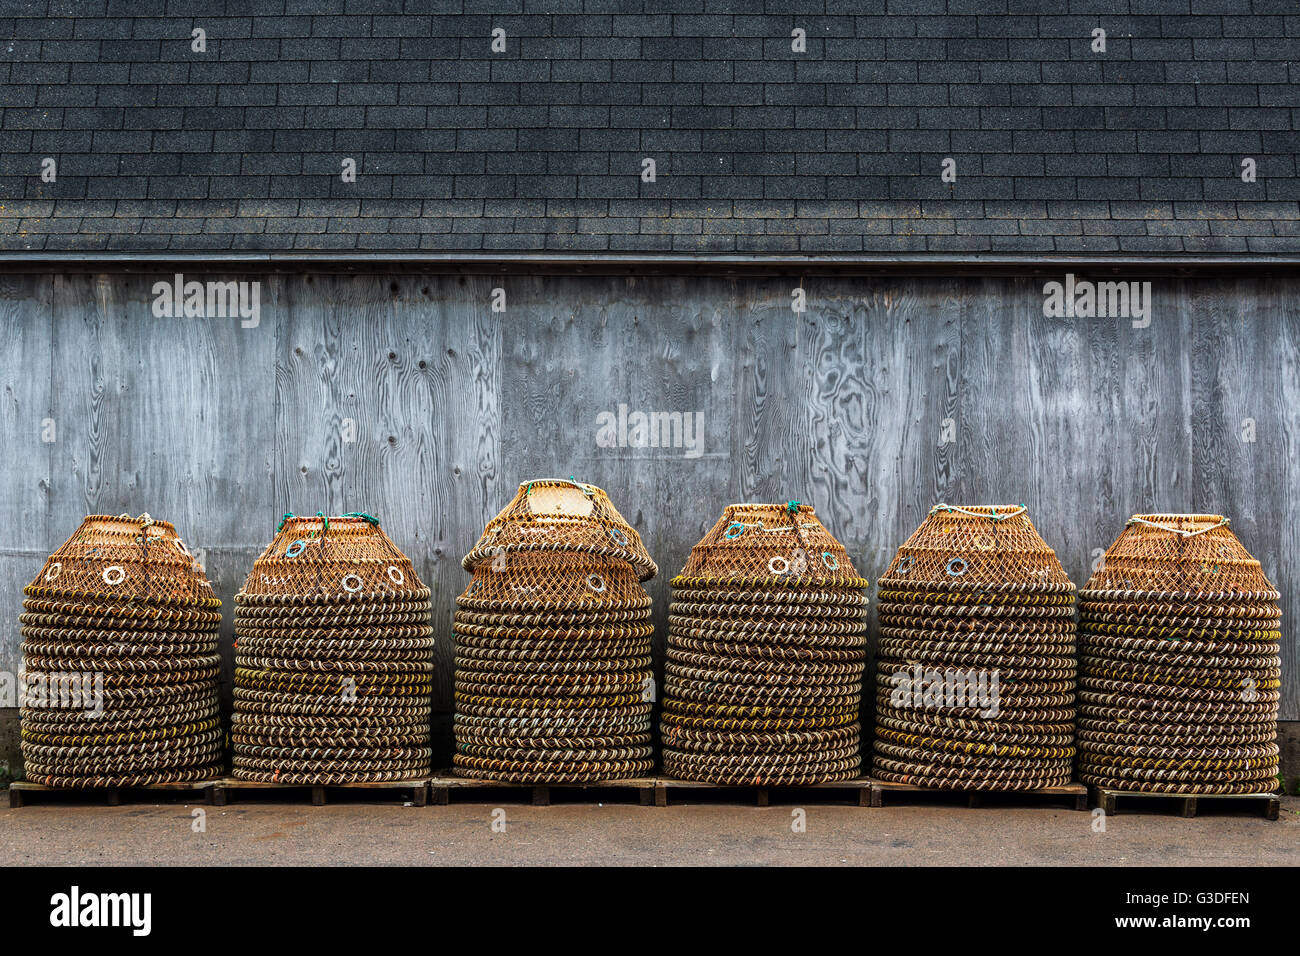 Crab pots for the commercial crab fishery stacked up on a wharf in rural Prince Edward Island, Canada. - Stock Image